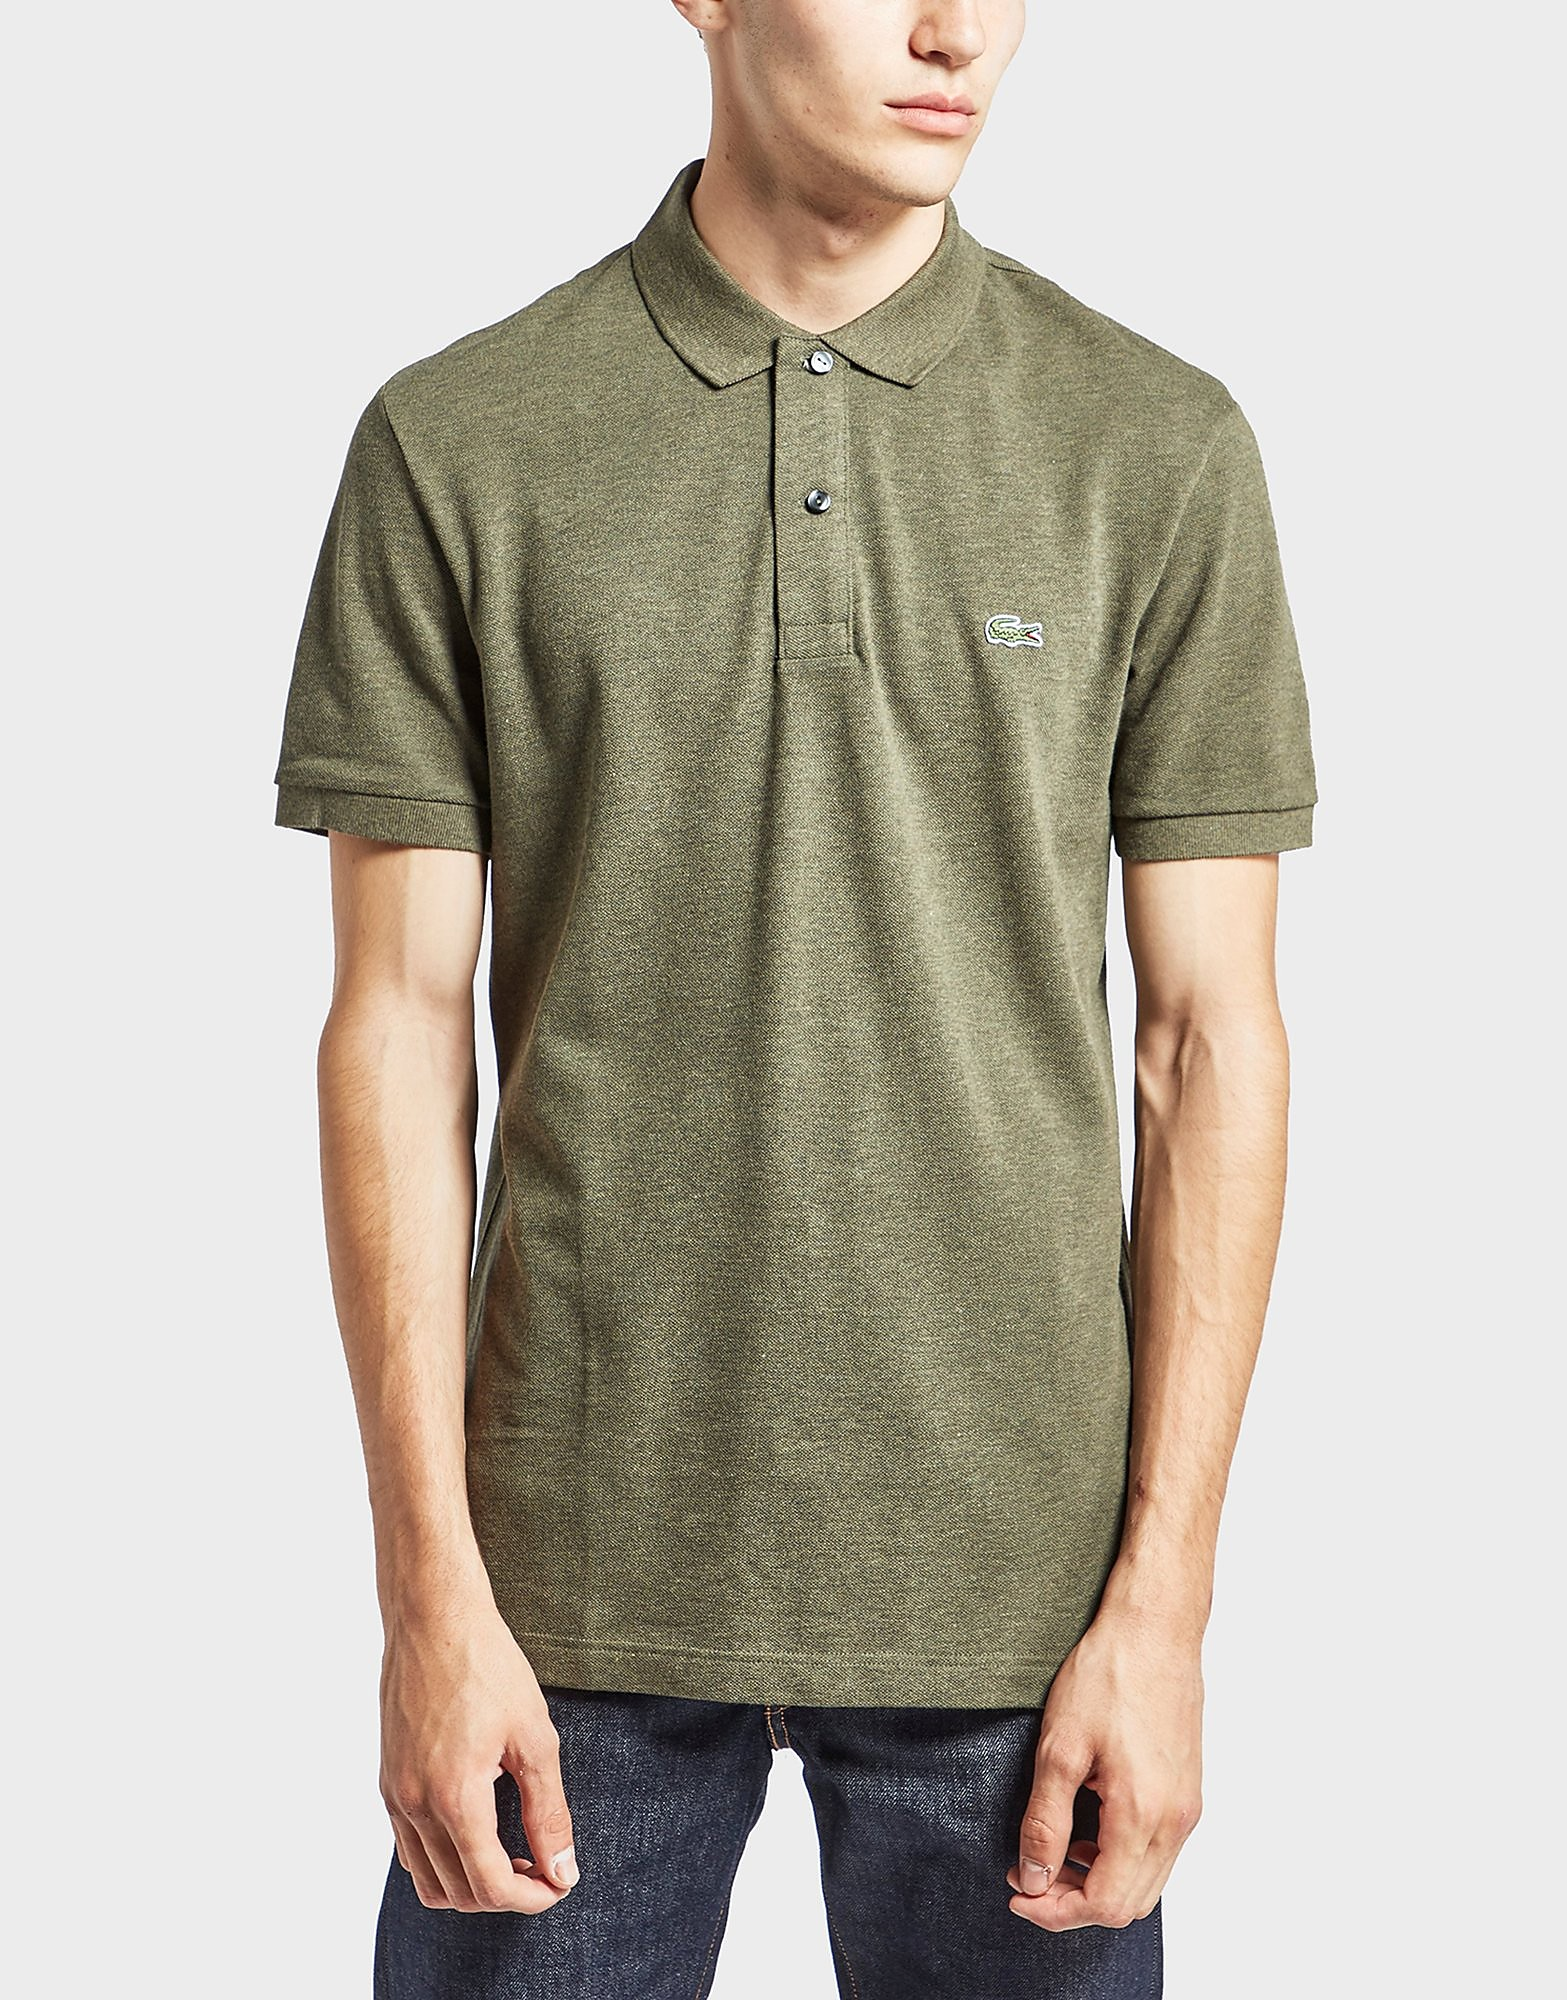 Lacoste 1212 Slim Short Sleeve Polo Shirt